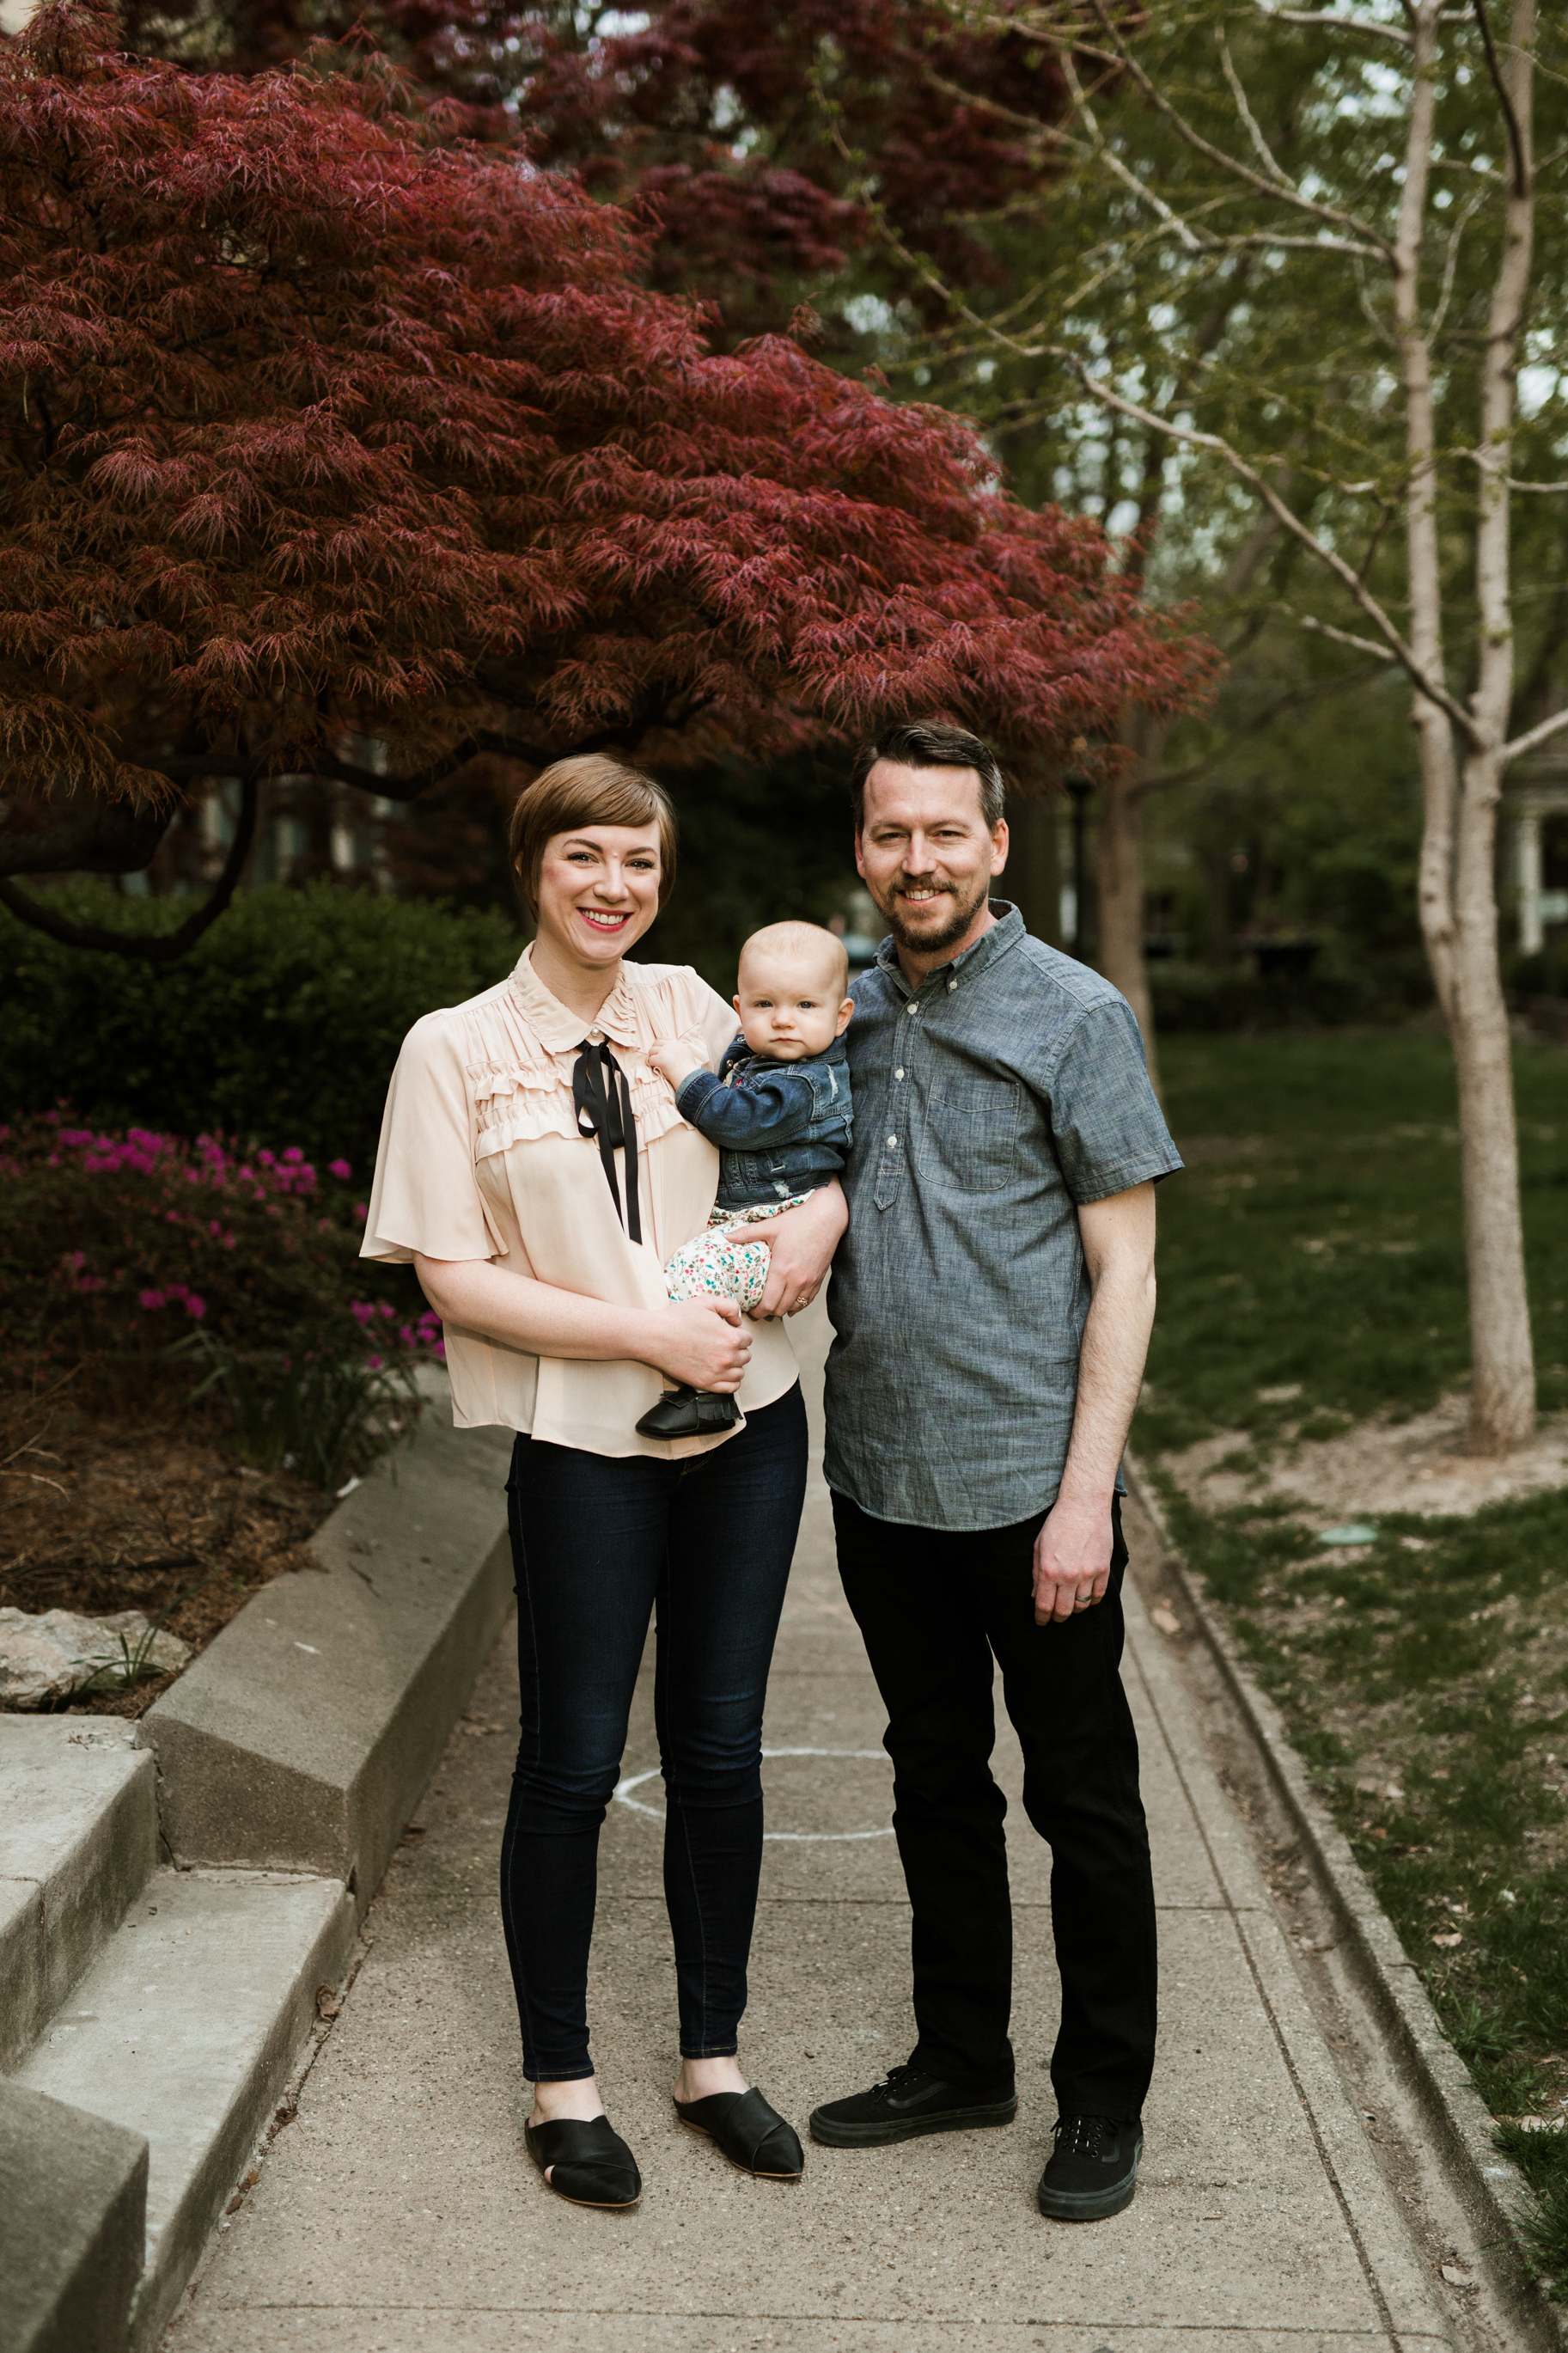 Rylan, Katie & Tim Read April 2018 Crystal Ludwick Photo WEBSITE 2 (10 of 41).jpg